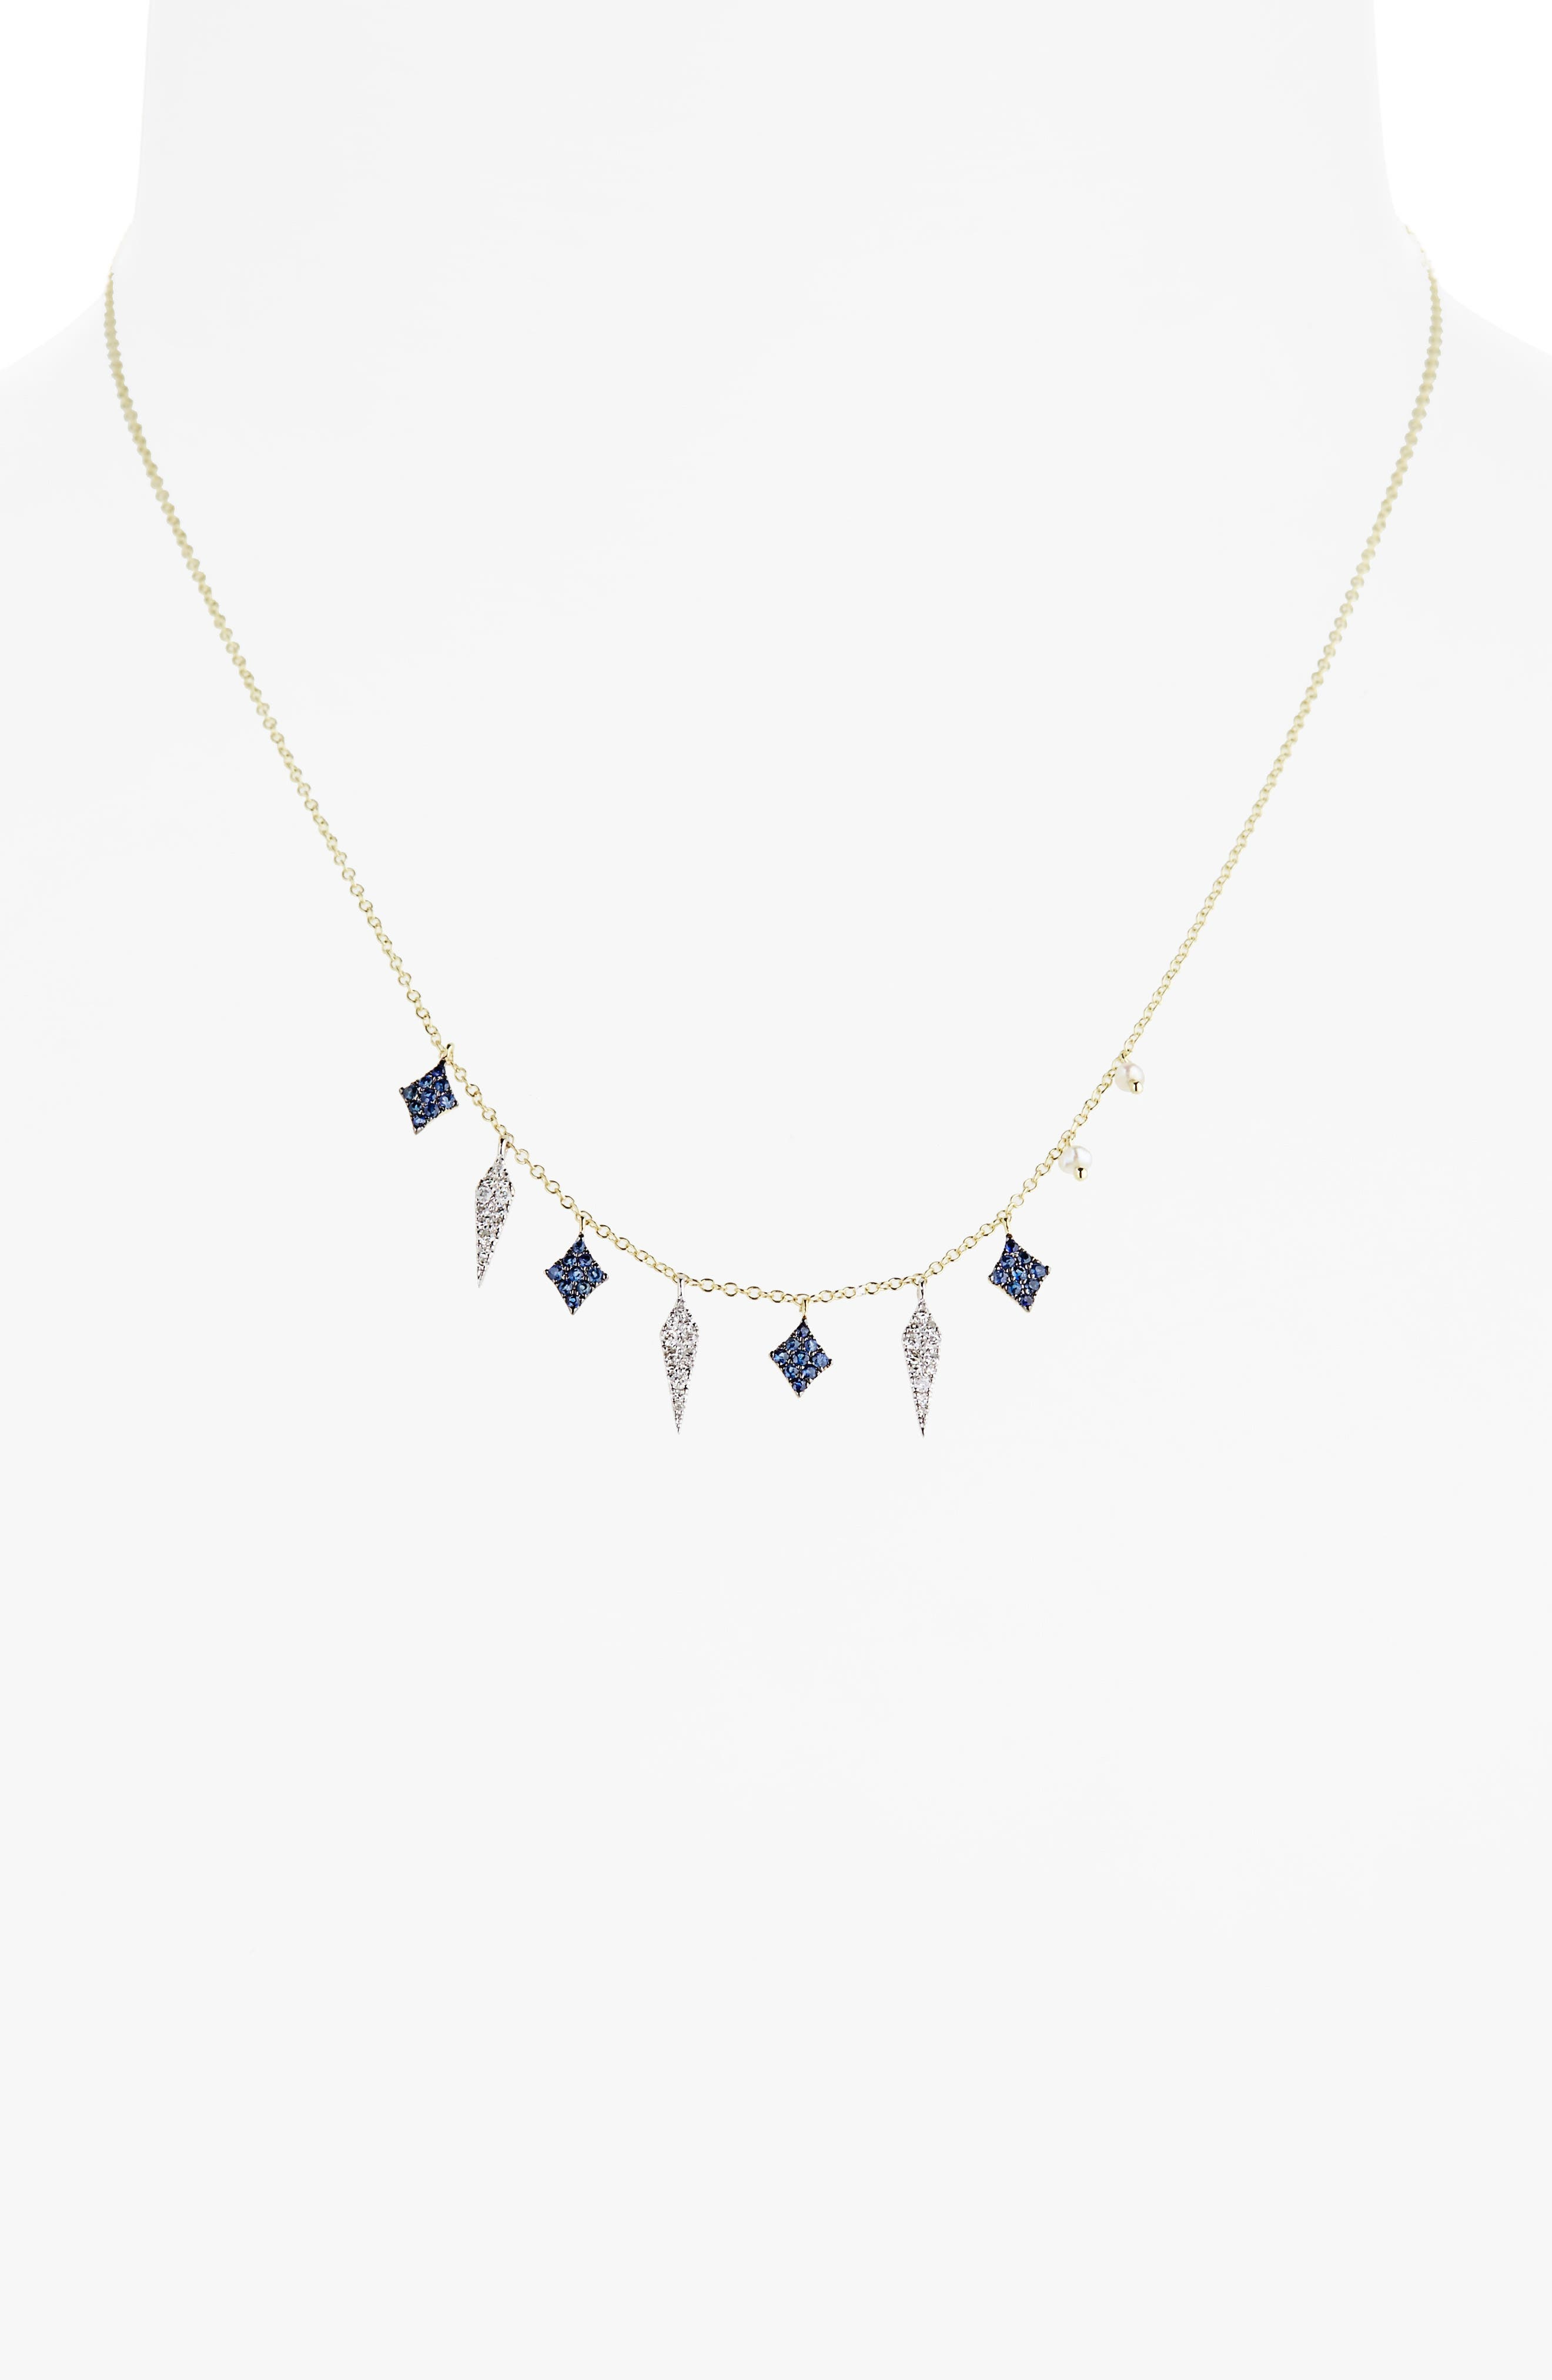 Miera T Diamond & Sapphire Charm Necklace,                         Main,                         color, Yellow Gold